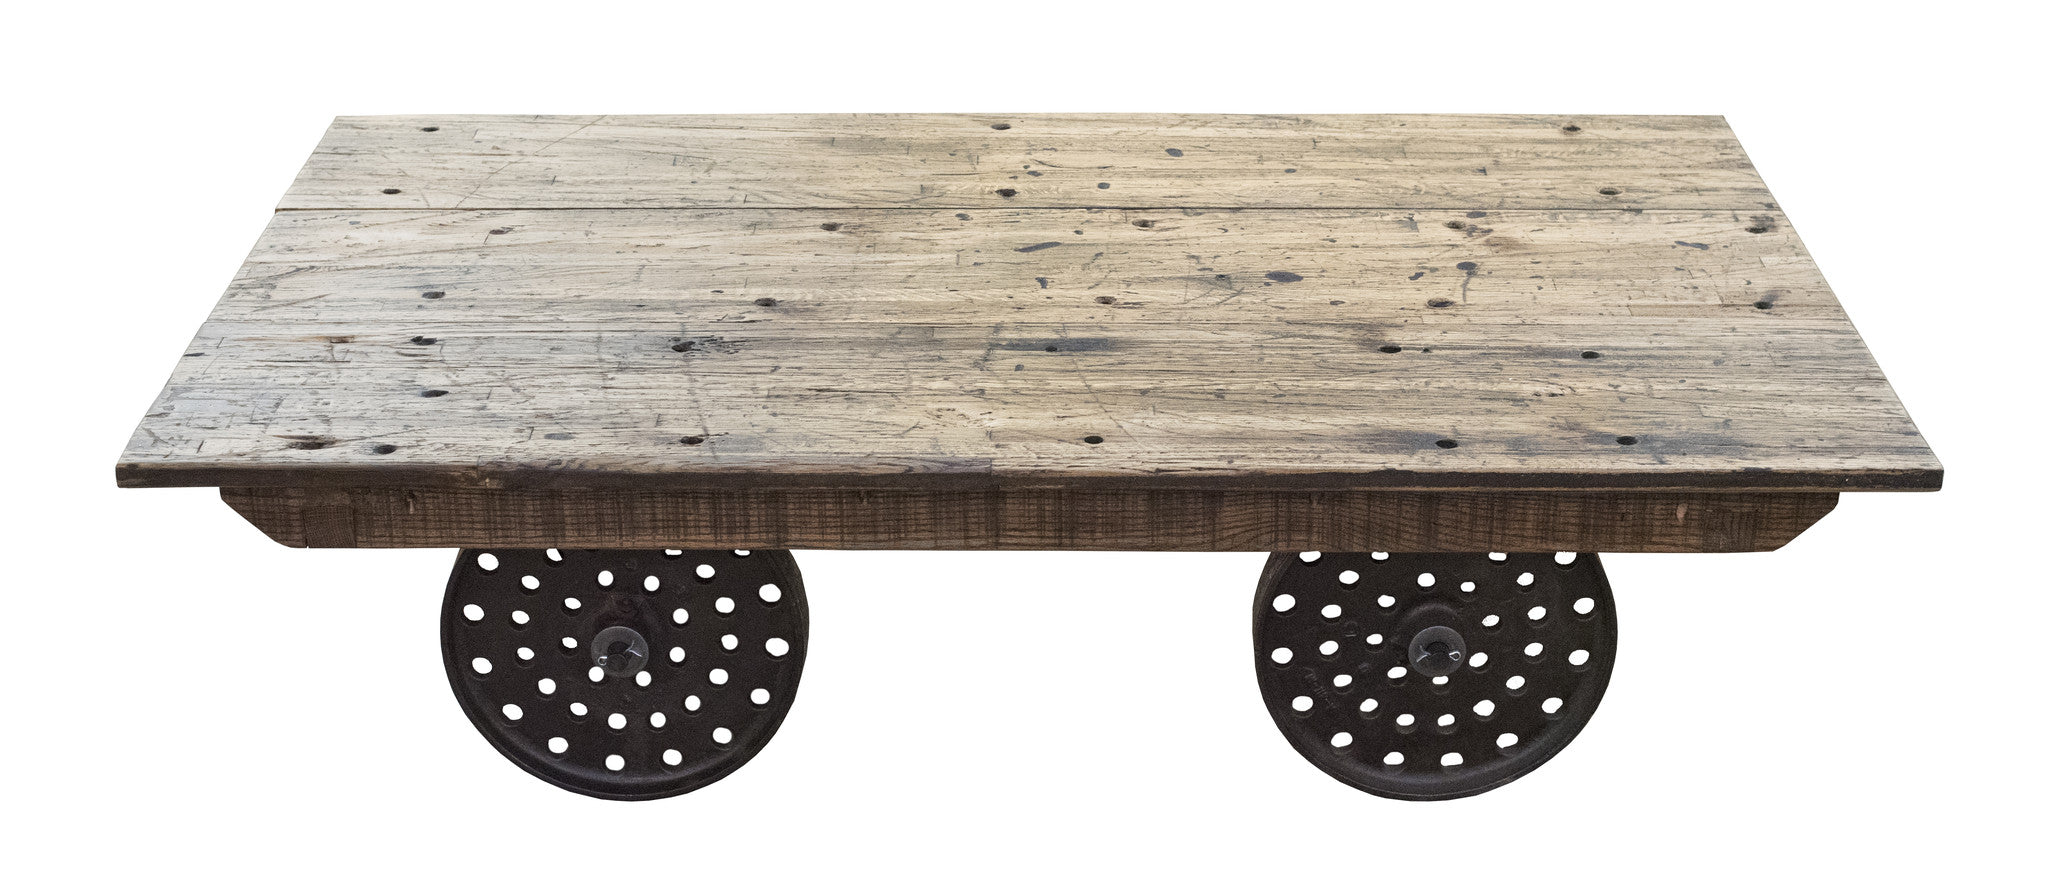 Trolley cart coffee table paul michael company trolley cart coffee table paul michael company 1 geotapseo Choice Image